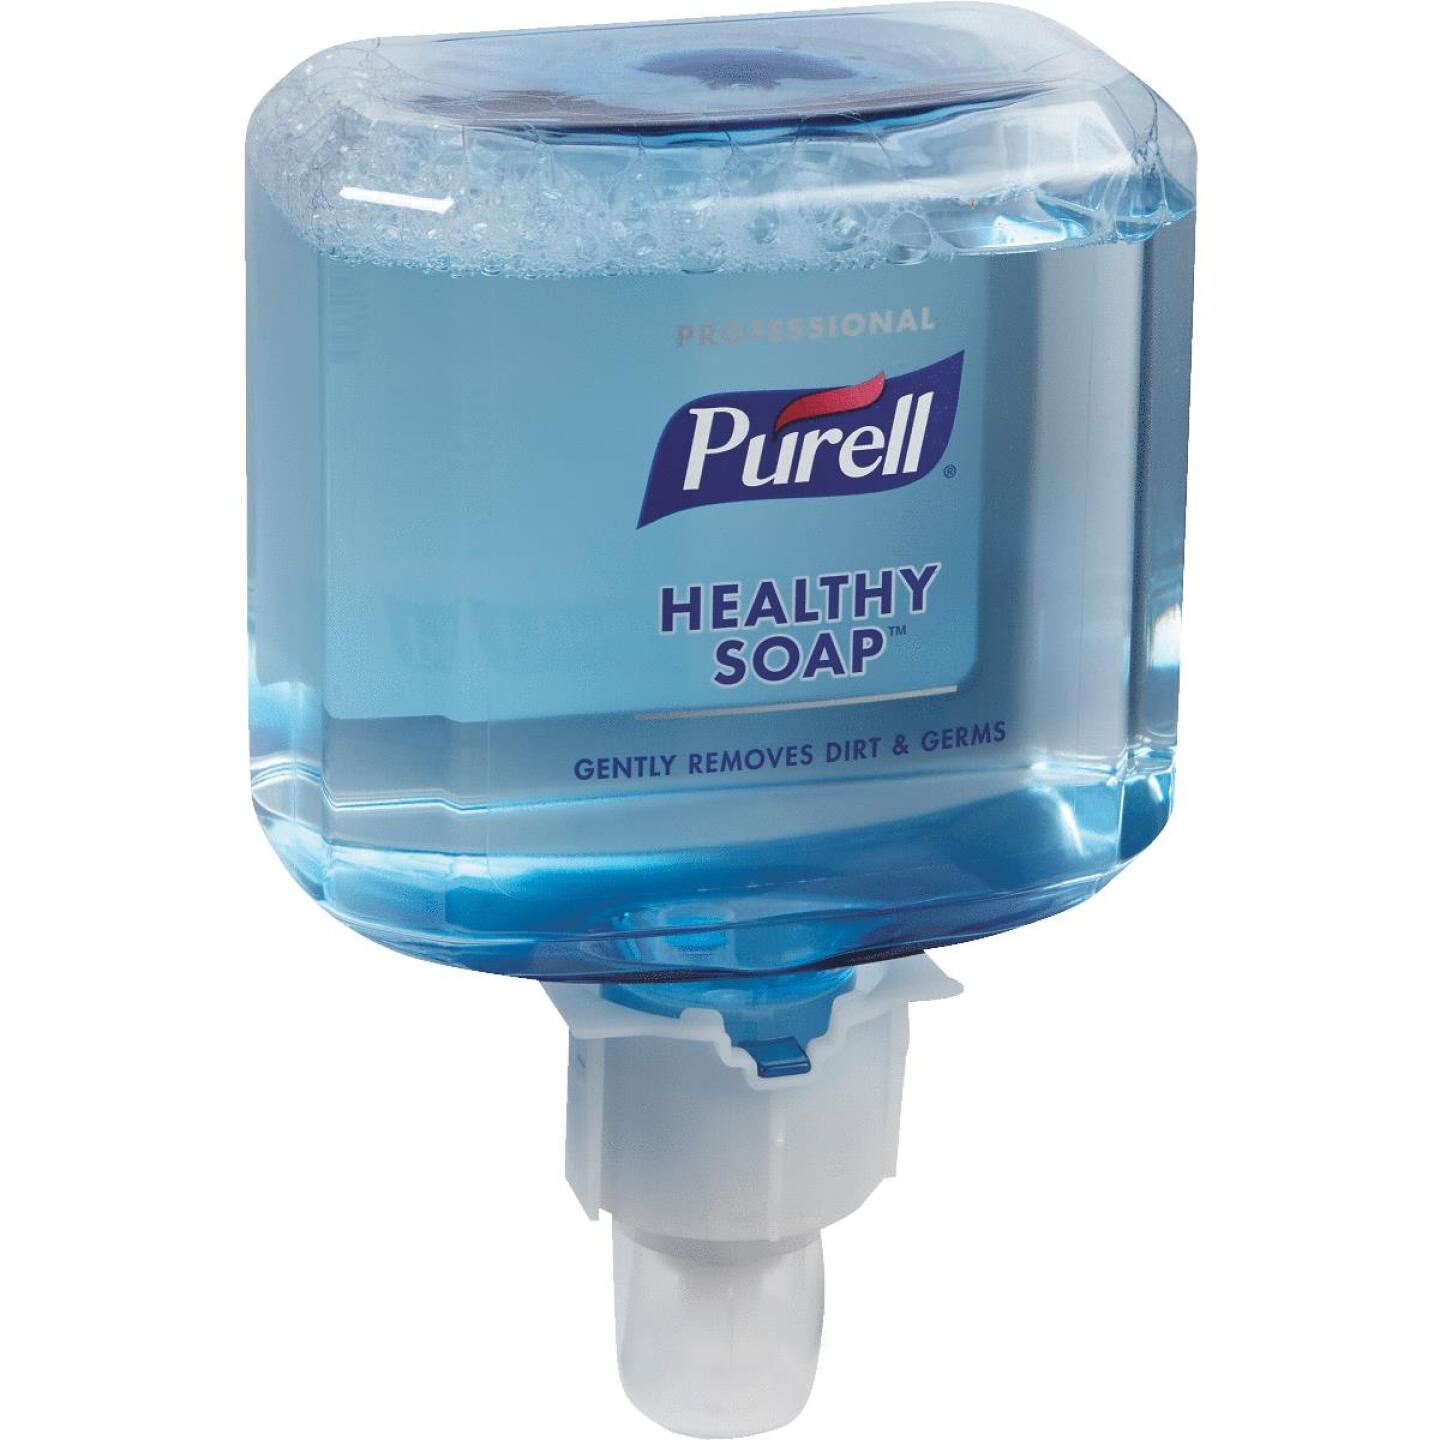 Purell ES4 Professional Healthy Soap Foam 1200 mL Fresh Scent Hand Cleaner for Push-Style Dispenser Image 1